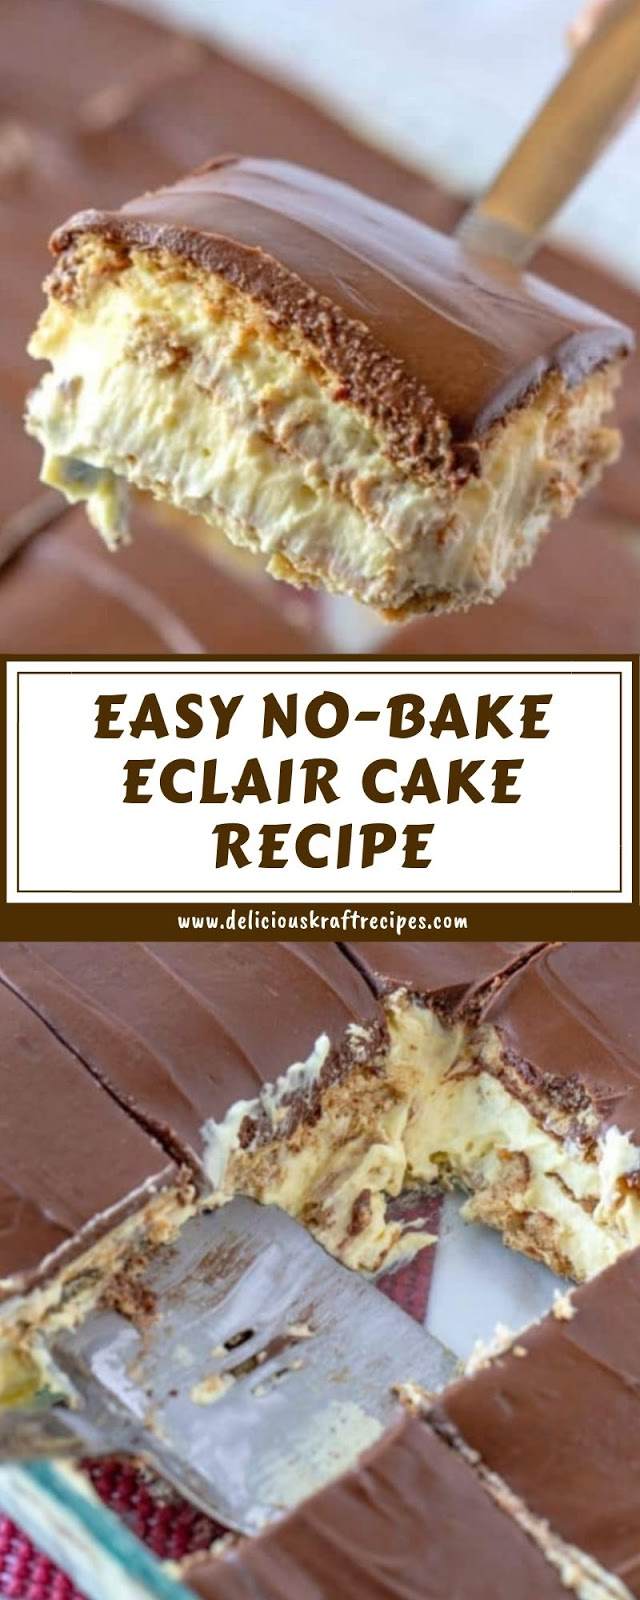 EASY NO-BAKE ECLAIR CAKE RECIPE